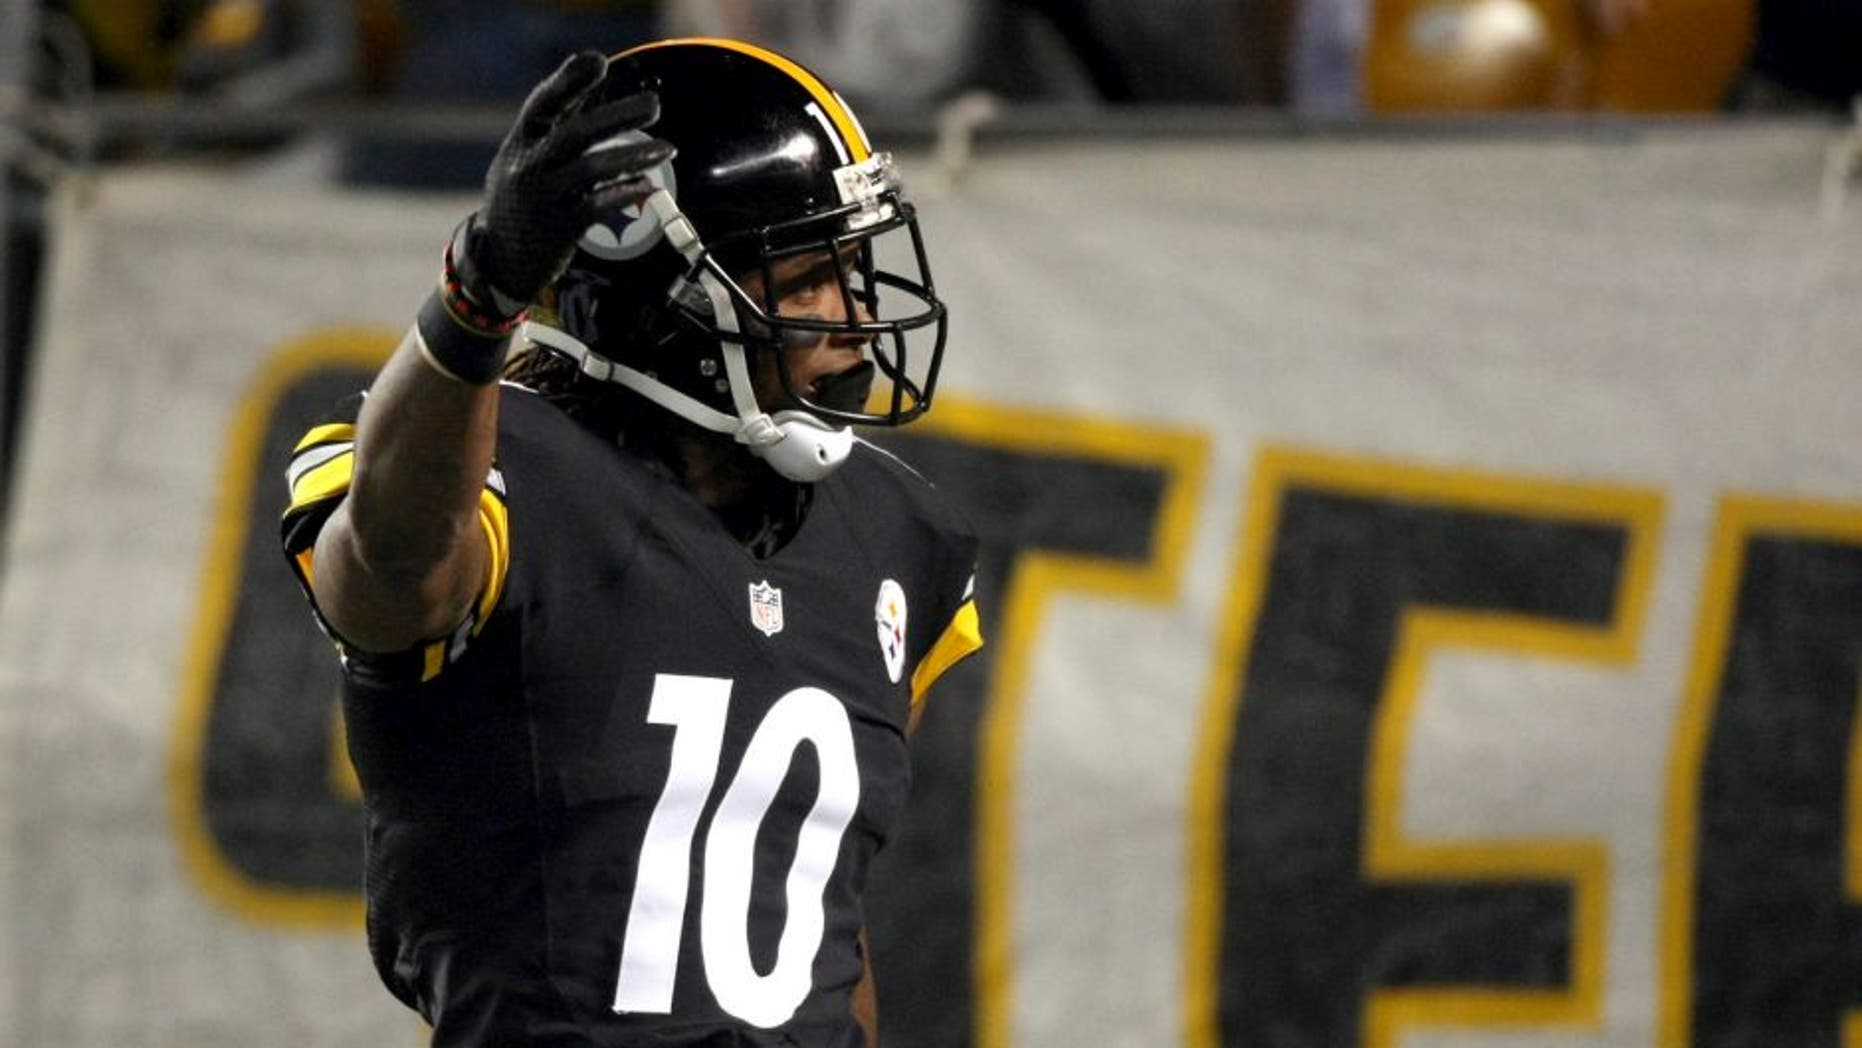 Oct 20, 2014; Pittsburgh, PA, USA; Pittsburgh Steelers wide receiver Martavis Bryant (10) celebrates his touchdown catch against the Houston Texans during the first half at Heinz Field. Mandatory Credit: Jason Bridge-USA TODAY Sports